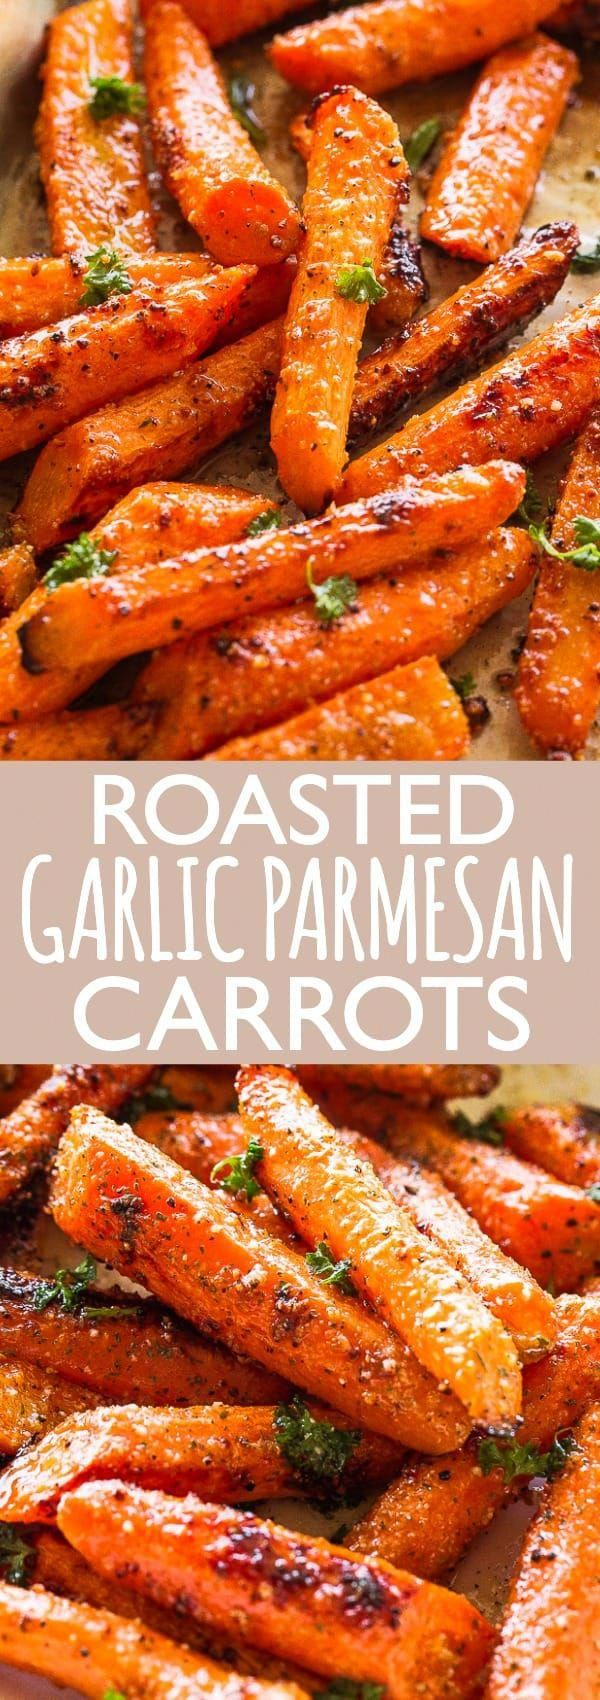 Roasted Garlic Parmesan Carrots - An easy, family favorite roasted carrots recipe tossed with the most flavorful garlicky and buttery parmesan cheese coating. The carrots come out sweet, tender and really delicious.